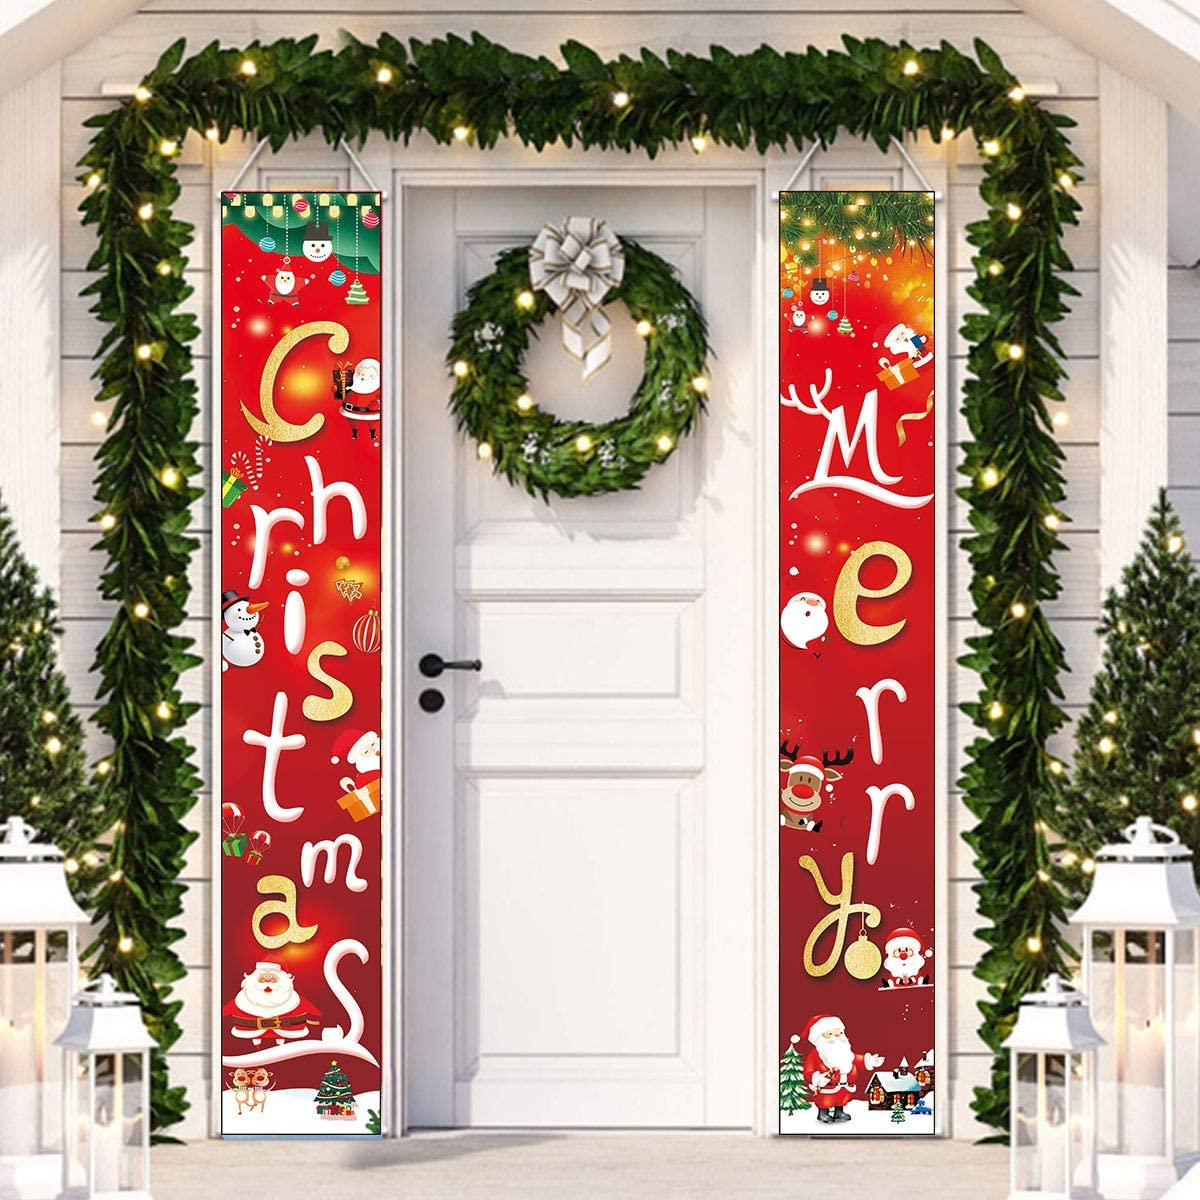 Outdoor Christmas Decorations for Home - Modern Farmhouse Christmas Decor - Red Porch Signs - Rustic Xmas Banner for Indoor Outside Front Door Living Room Kitchen Wall Party (Merry Christmas)